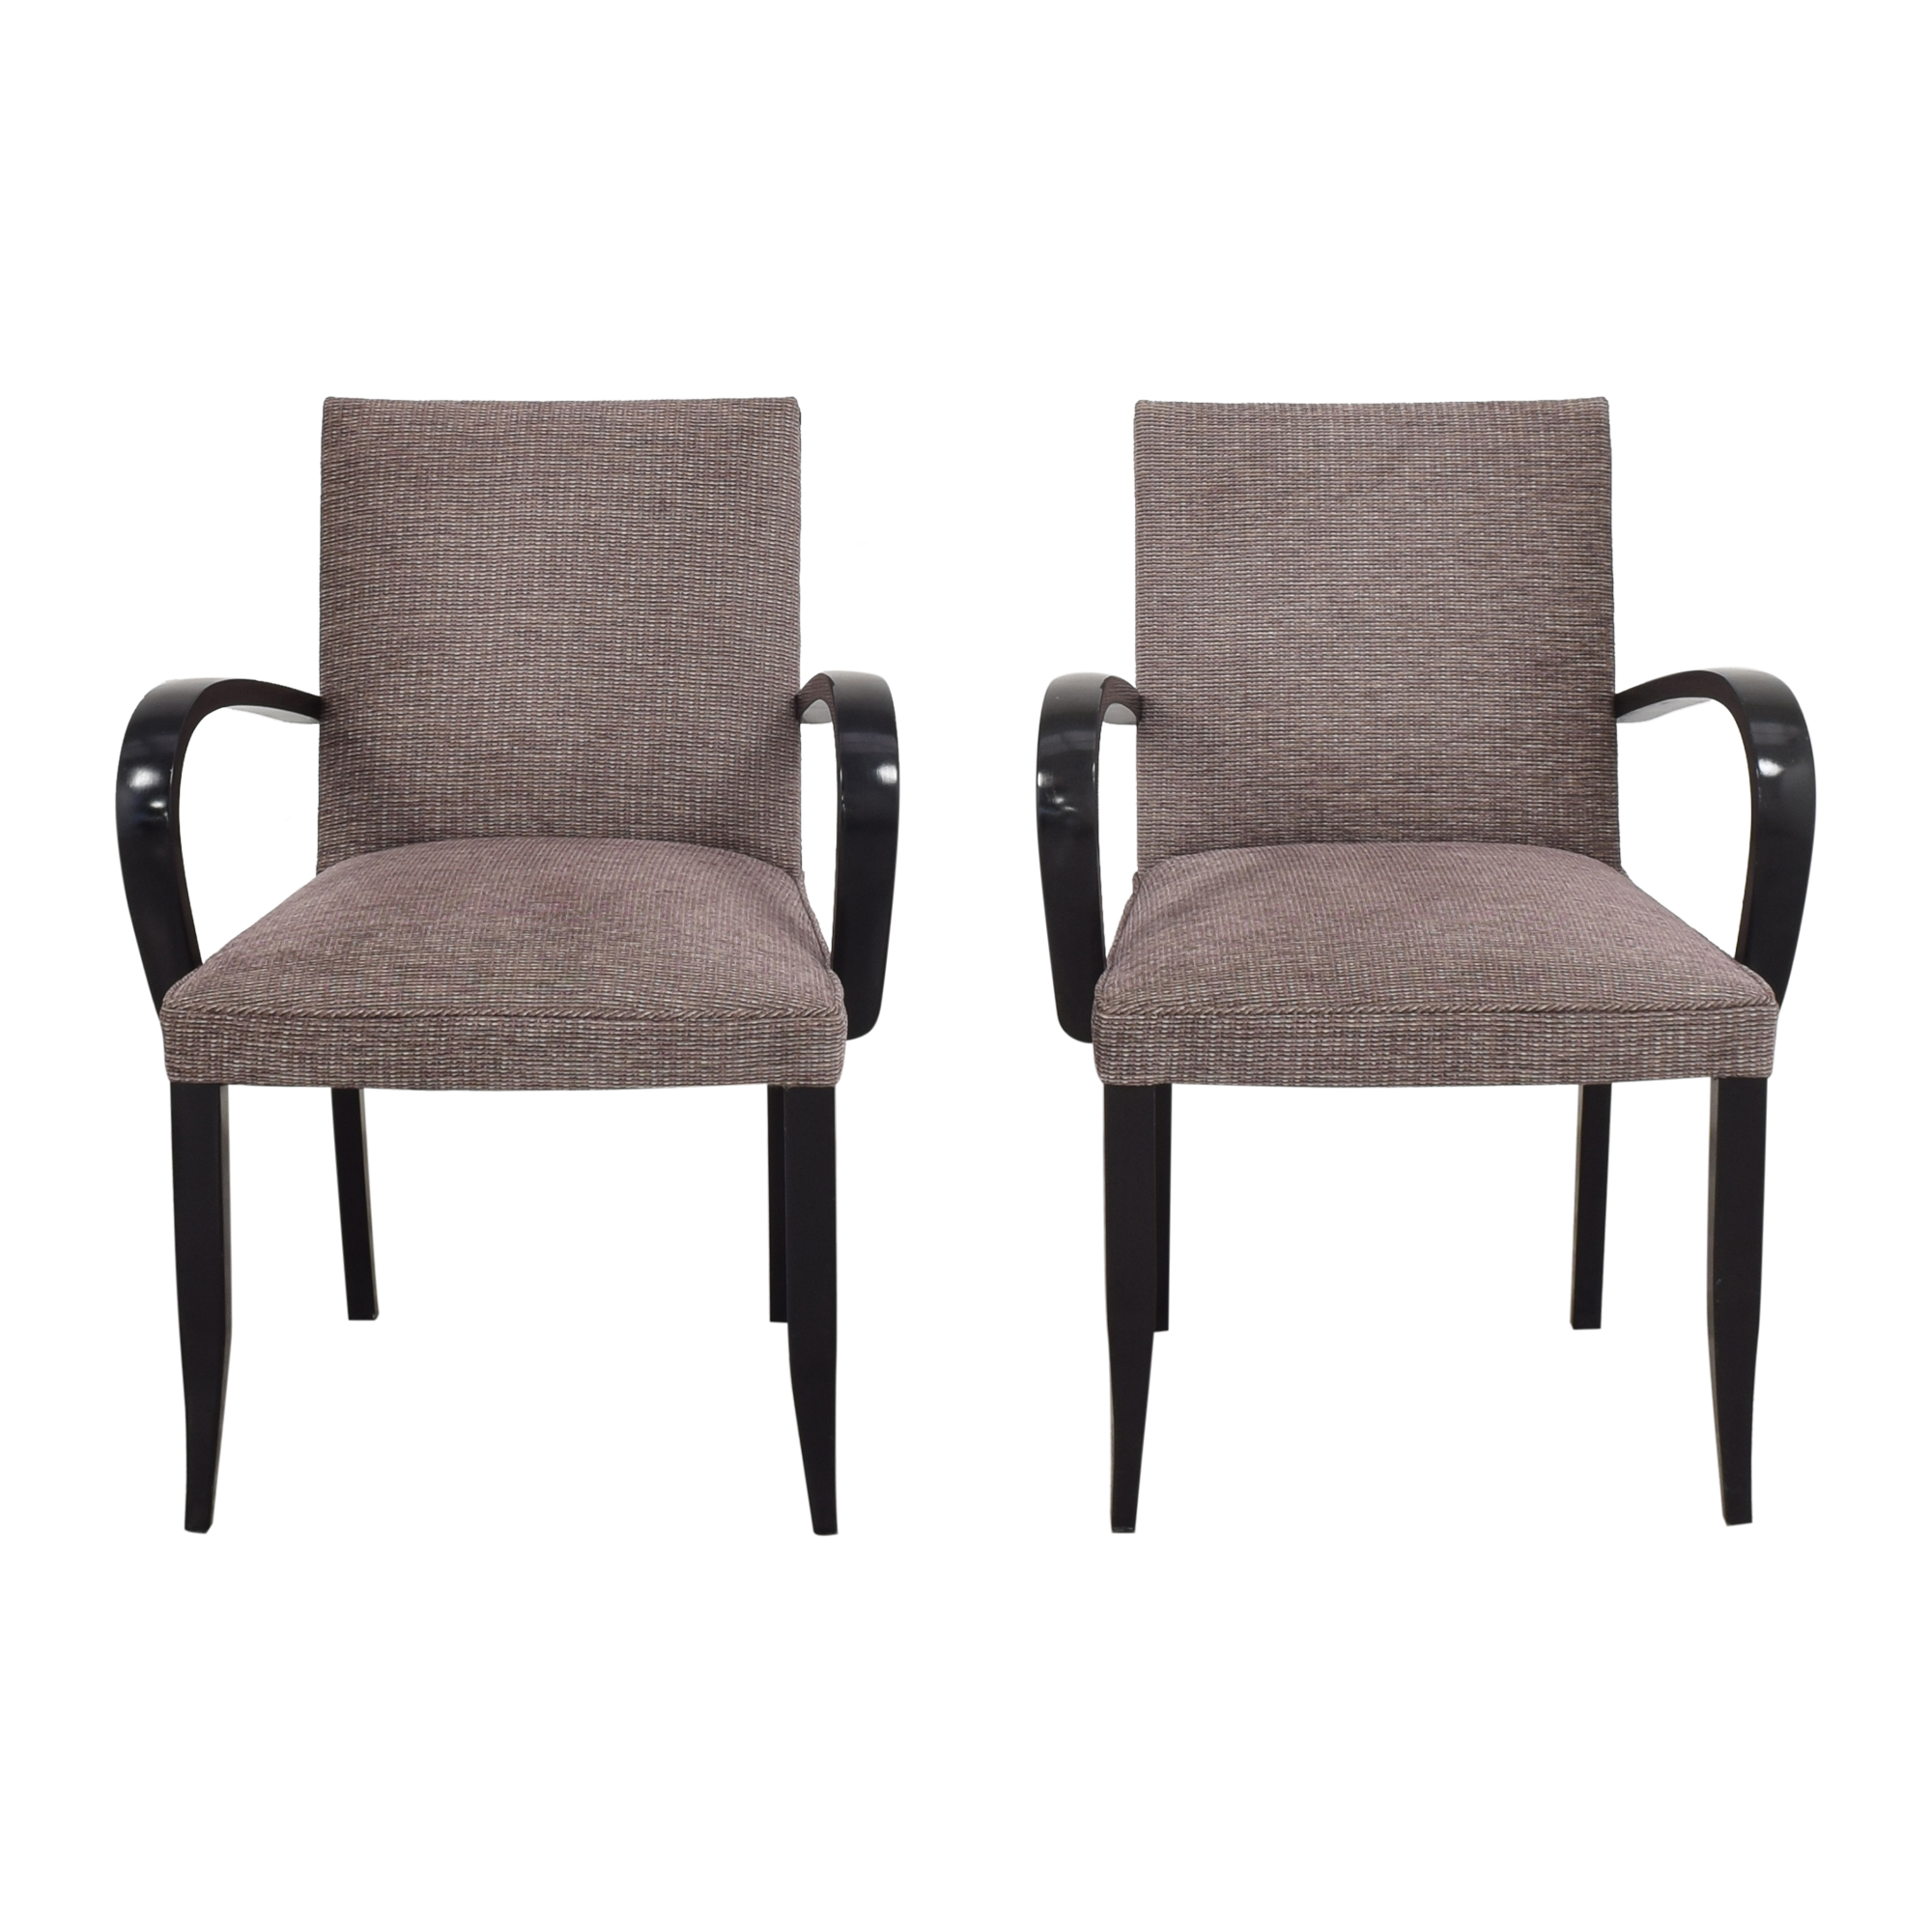 buy  Office Arm Chairs online